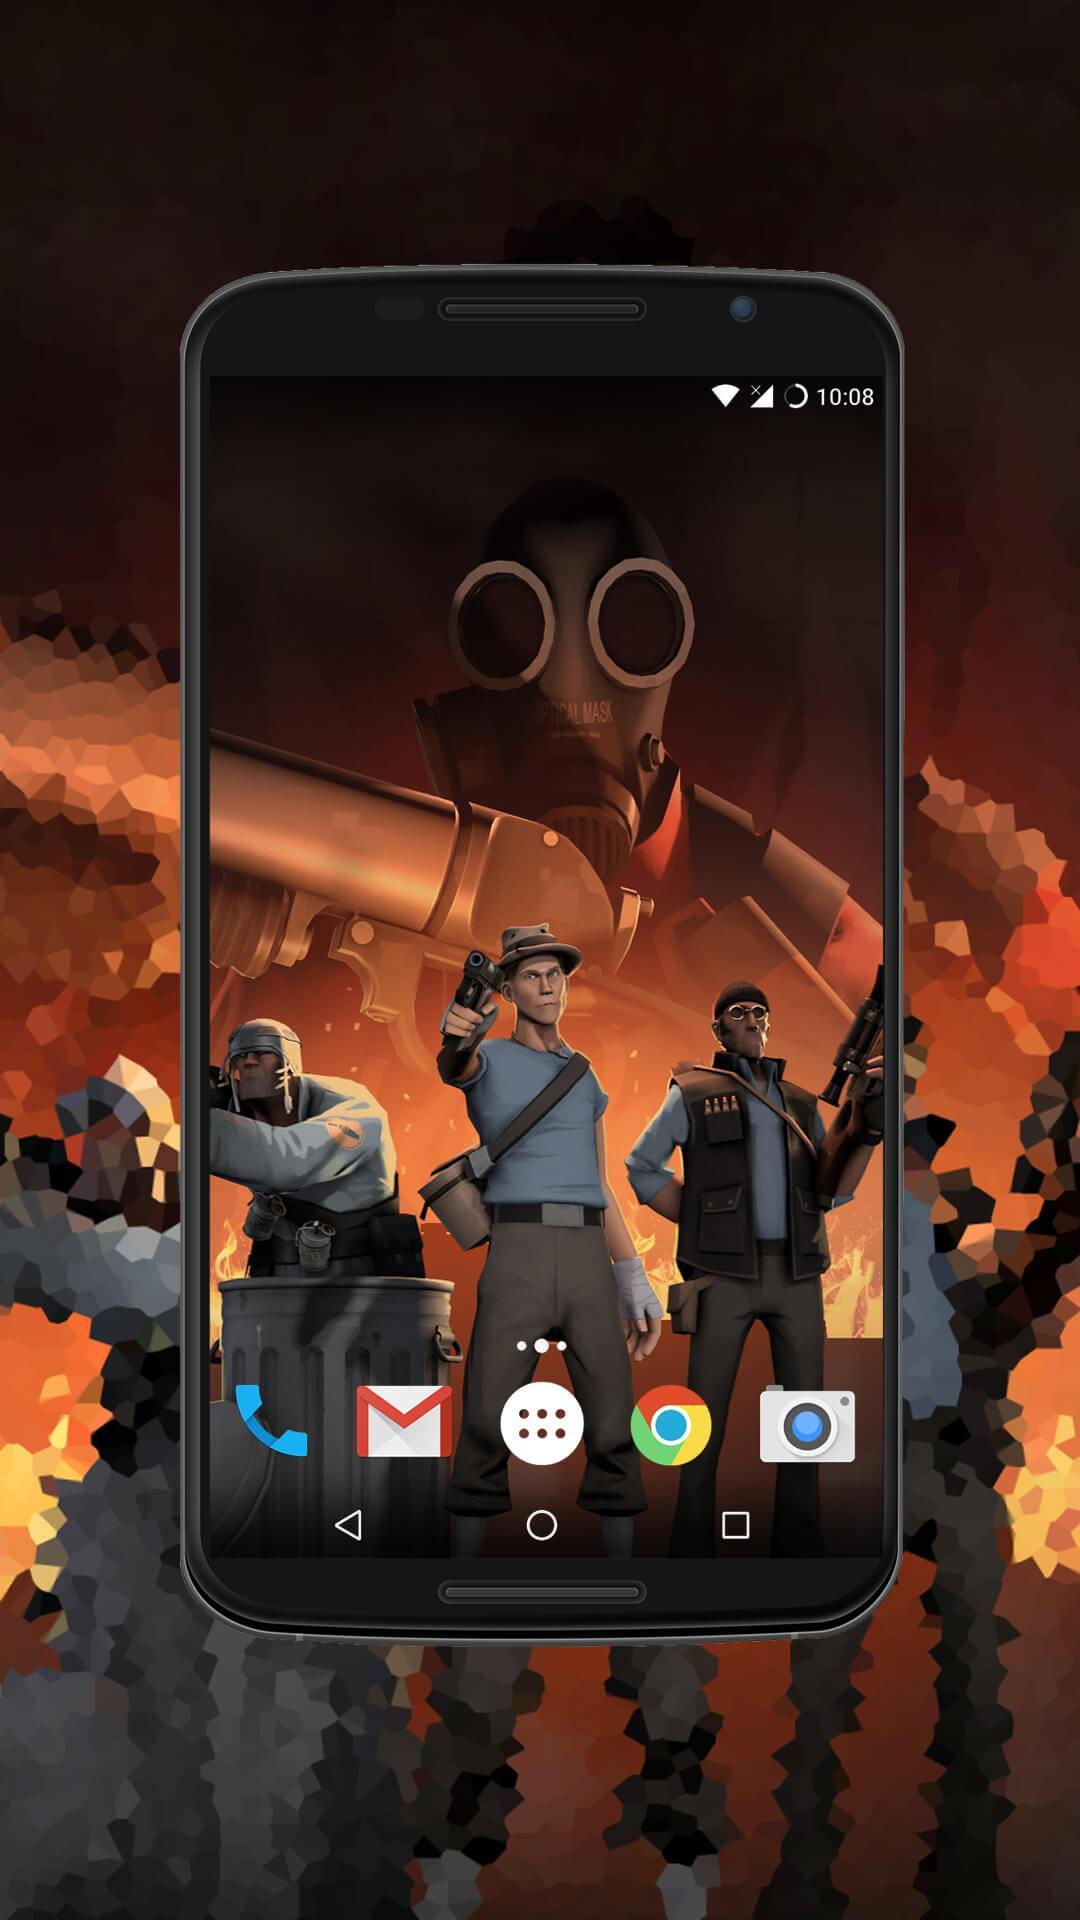 android team fortress 2 background